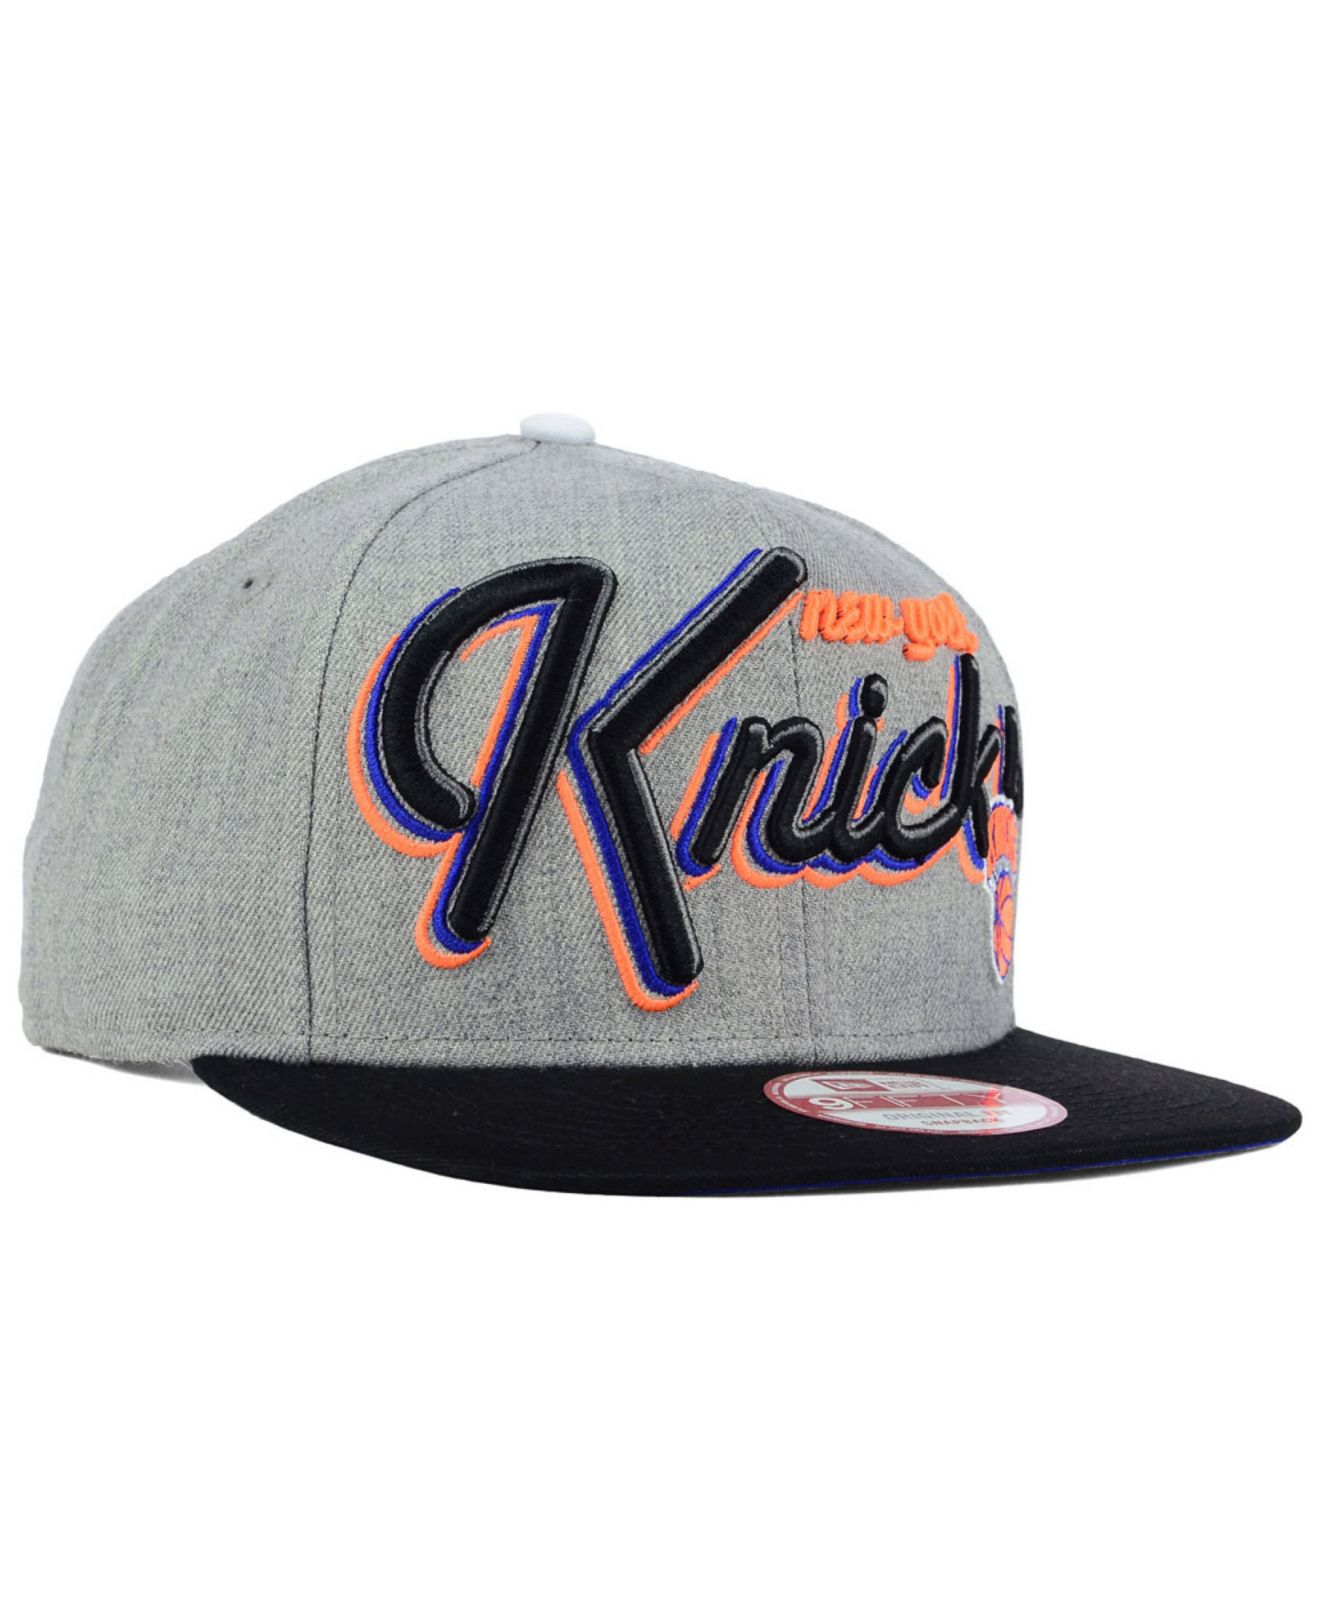 best value 38e4e 24ff2 Lyst - KTZ New York Knicks Hwc The Heather Bright Nights 9fifty ...